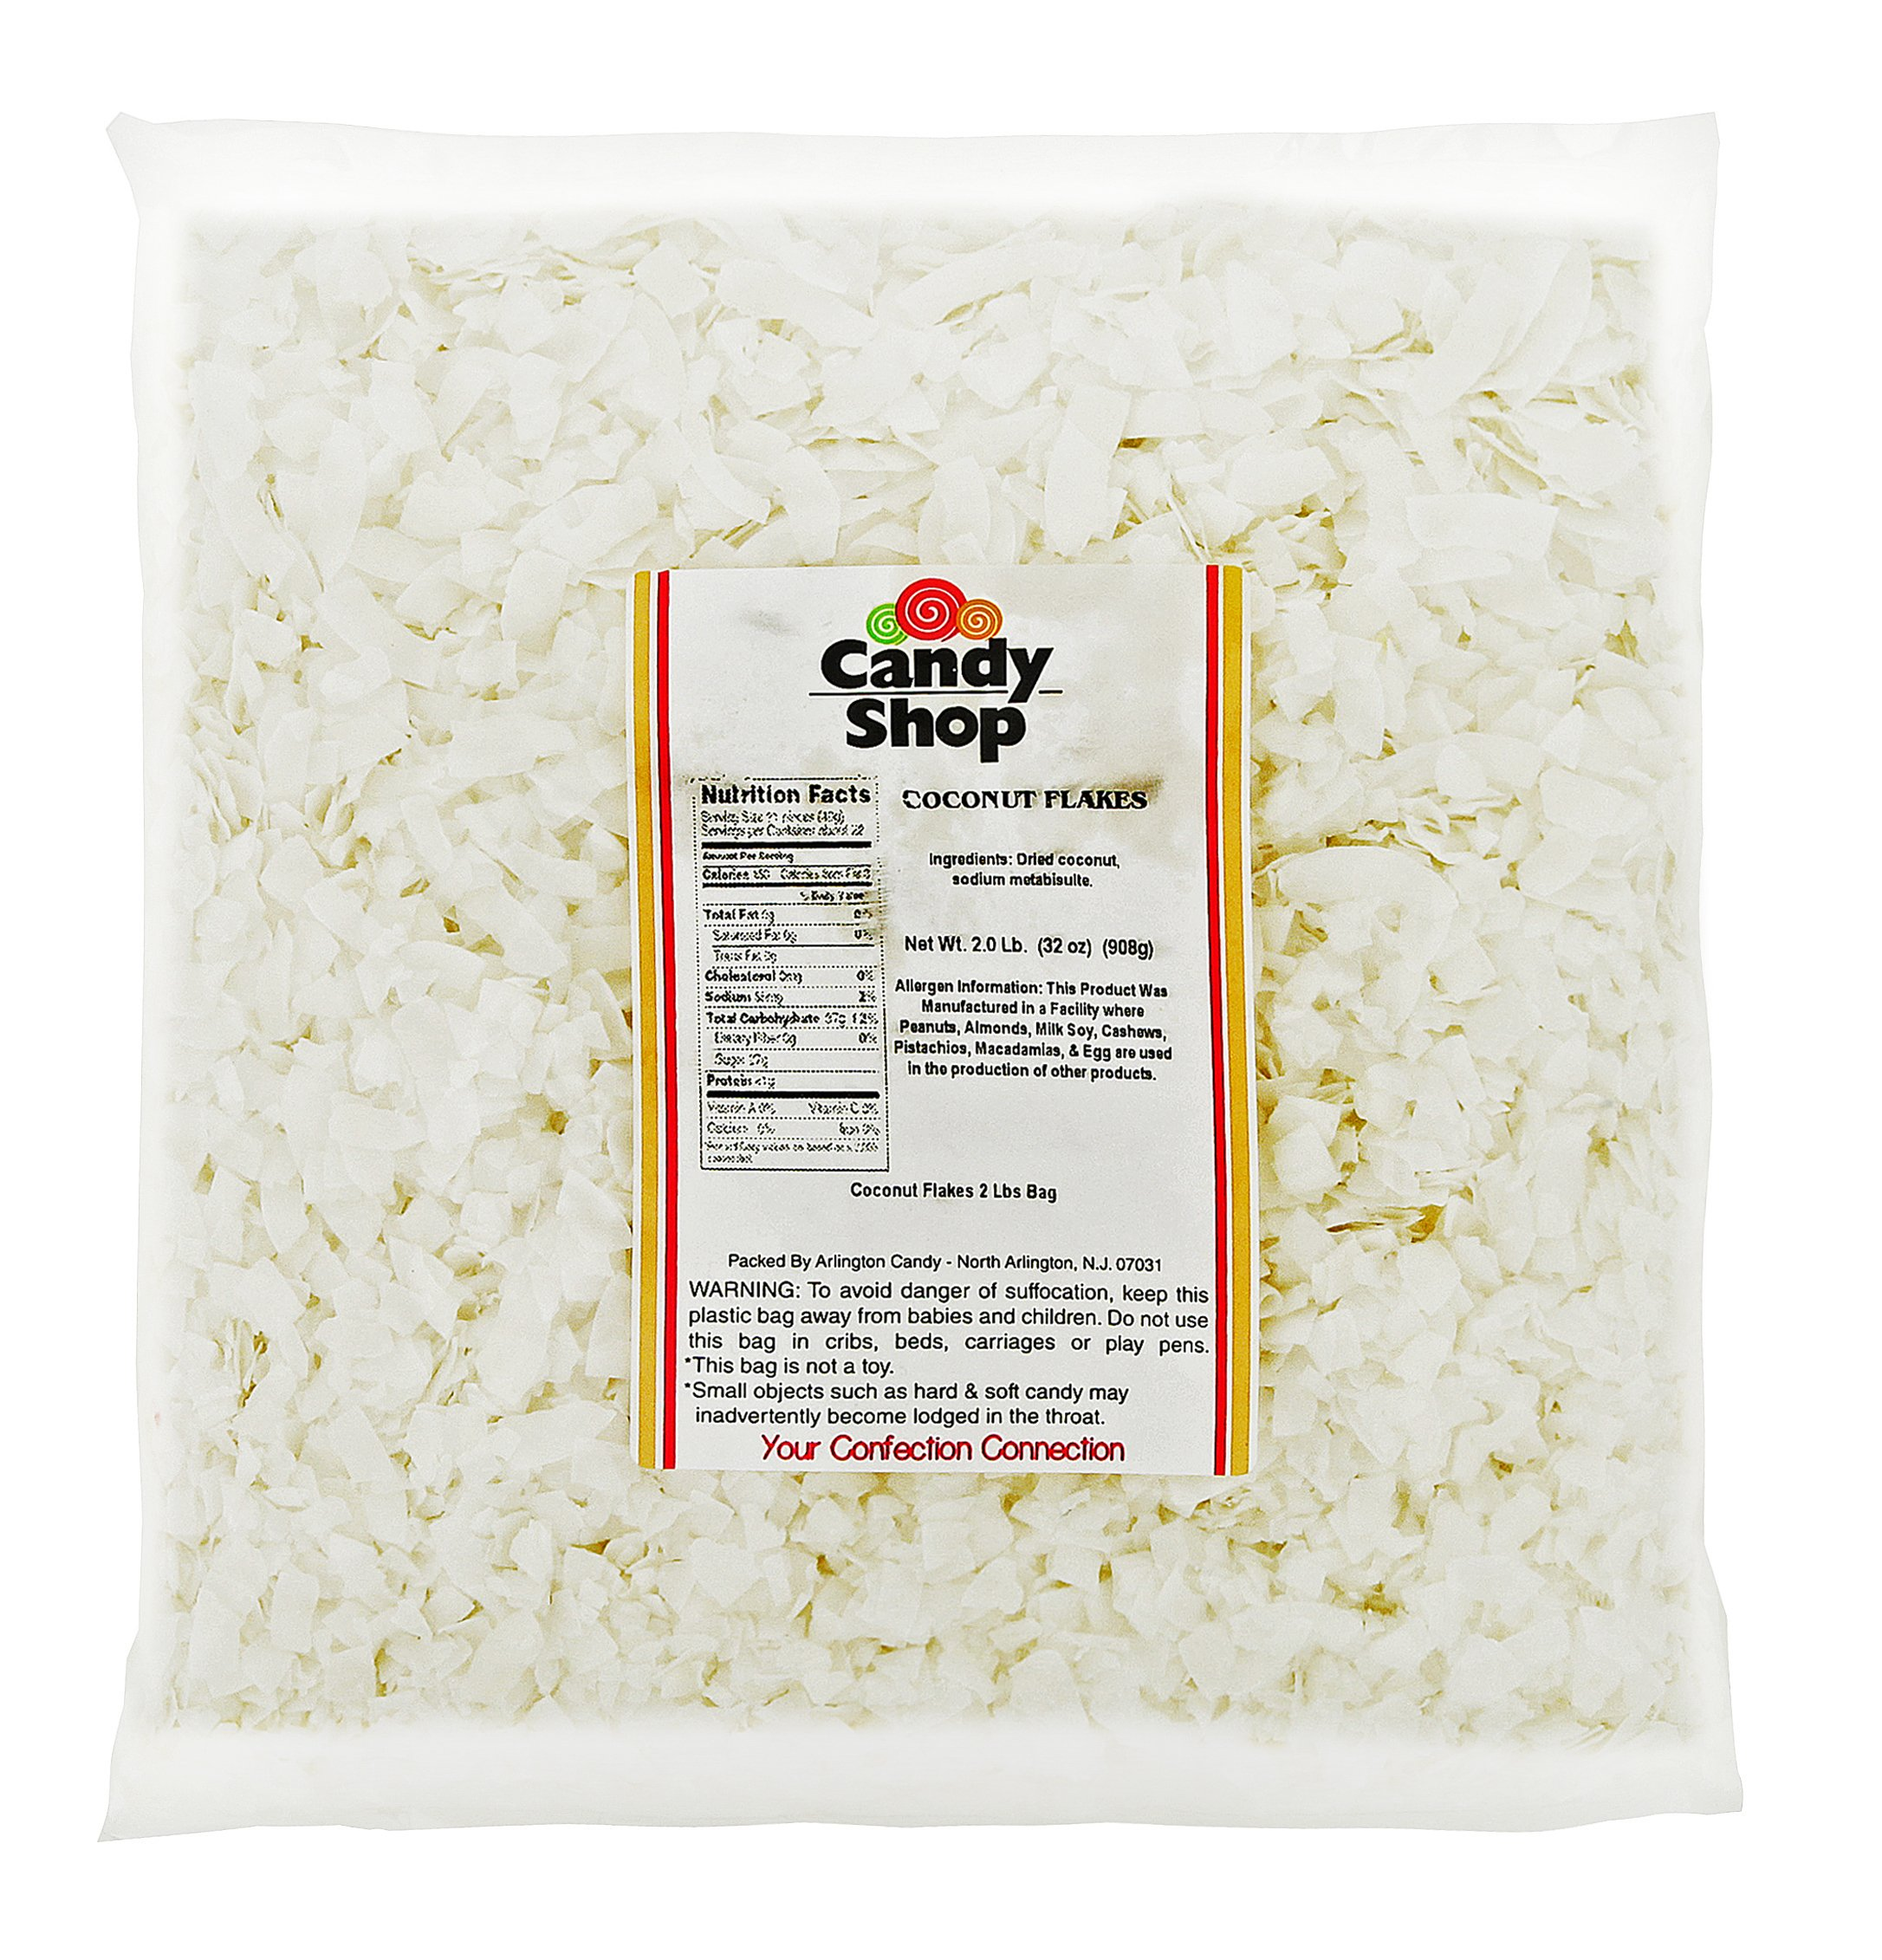 Candy Shop Coconut Flakes (Unsweetened) 2 Lb Bag